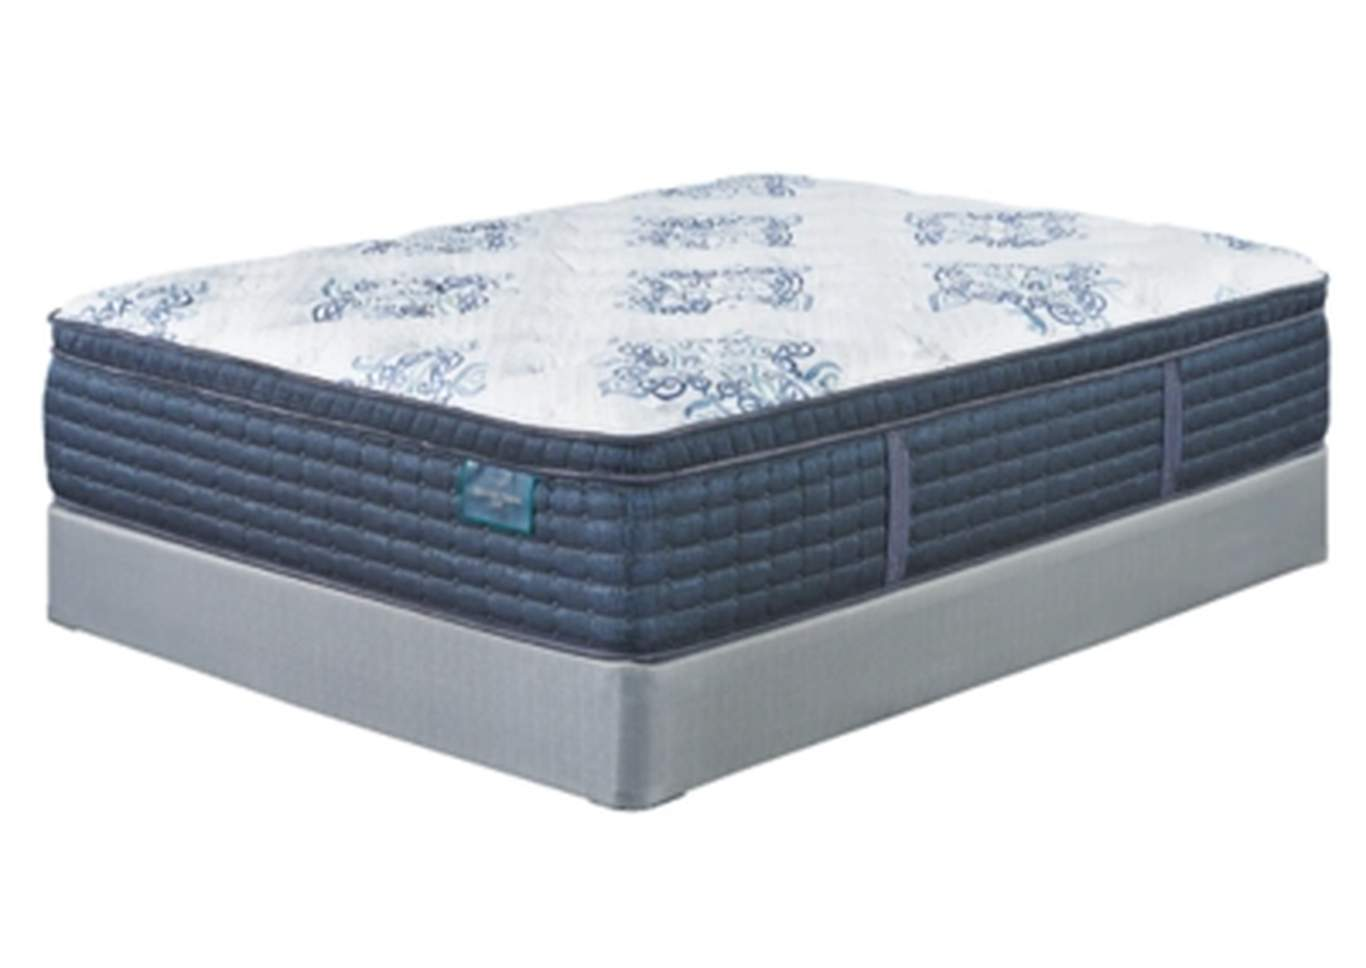 Mt. Dana Euro Top White Queen Mattress,Sierra Sleep by Ashley